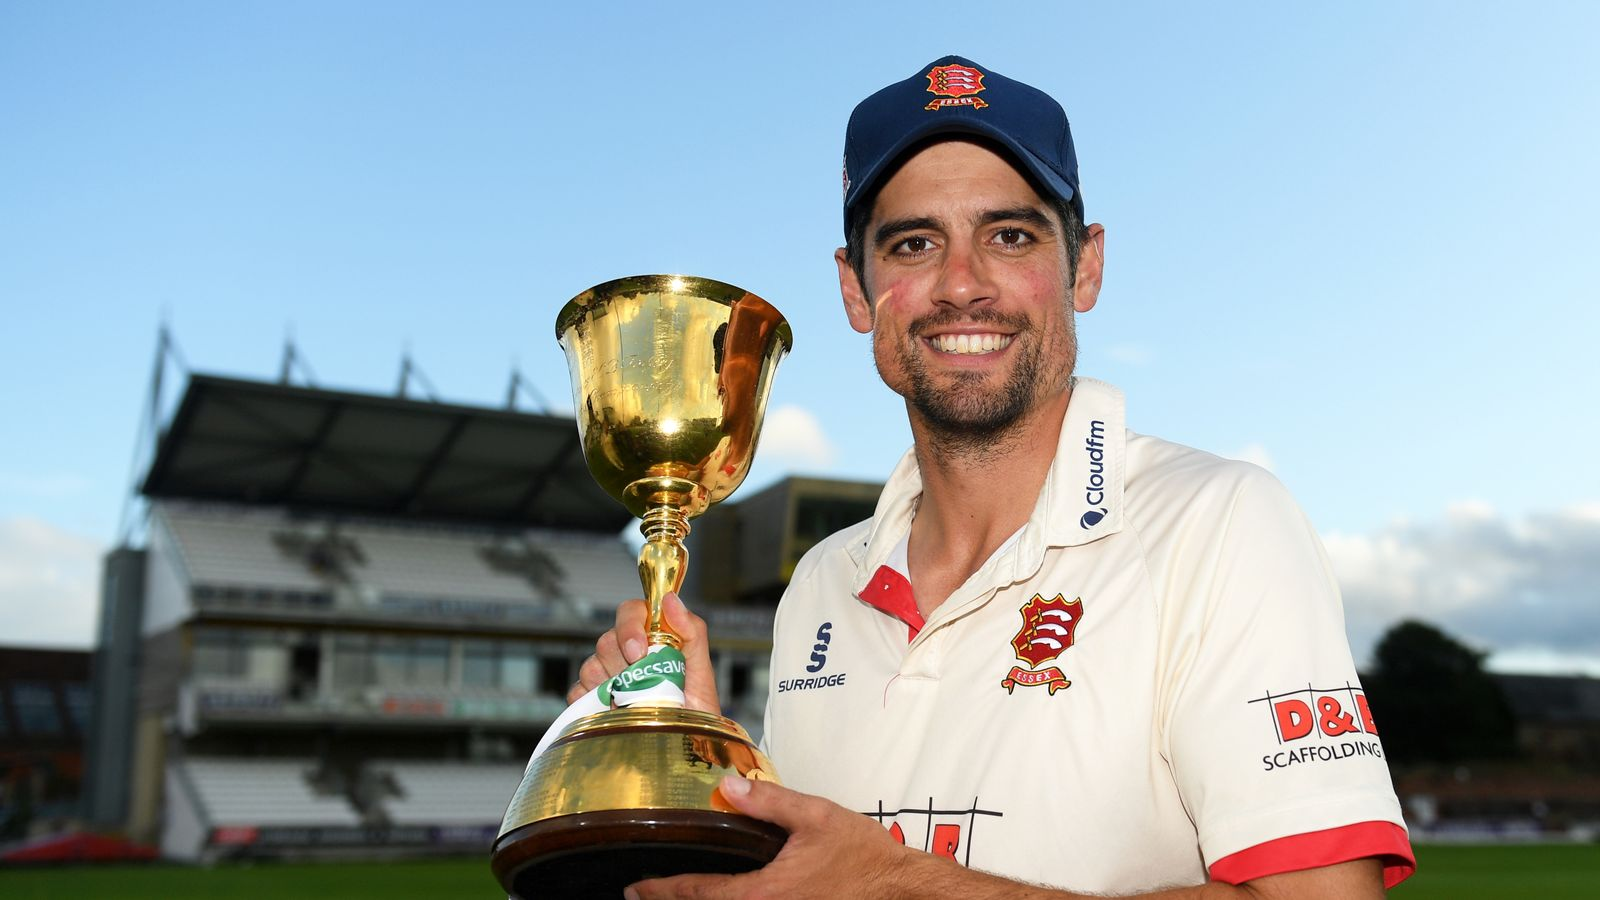 Sir Alastair Cook contra la temporada del Campeonato del Condado acortada | Noticias de Cricket 2